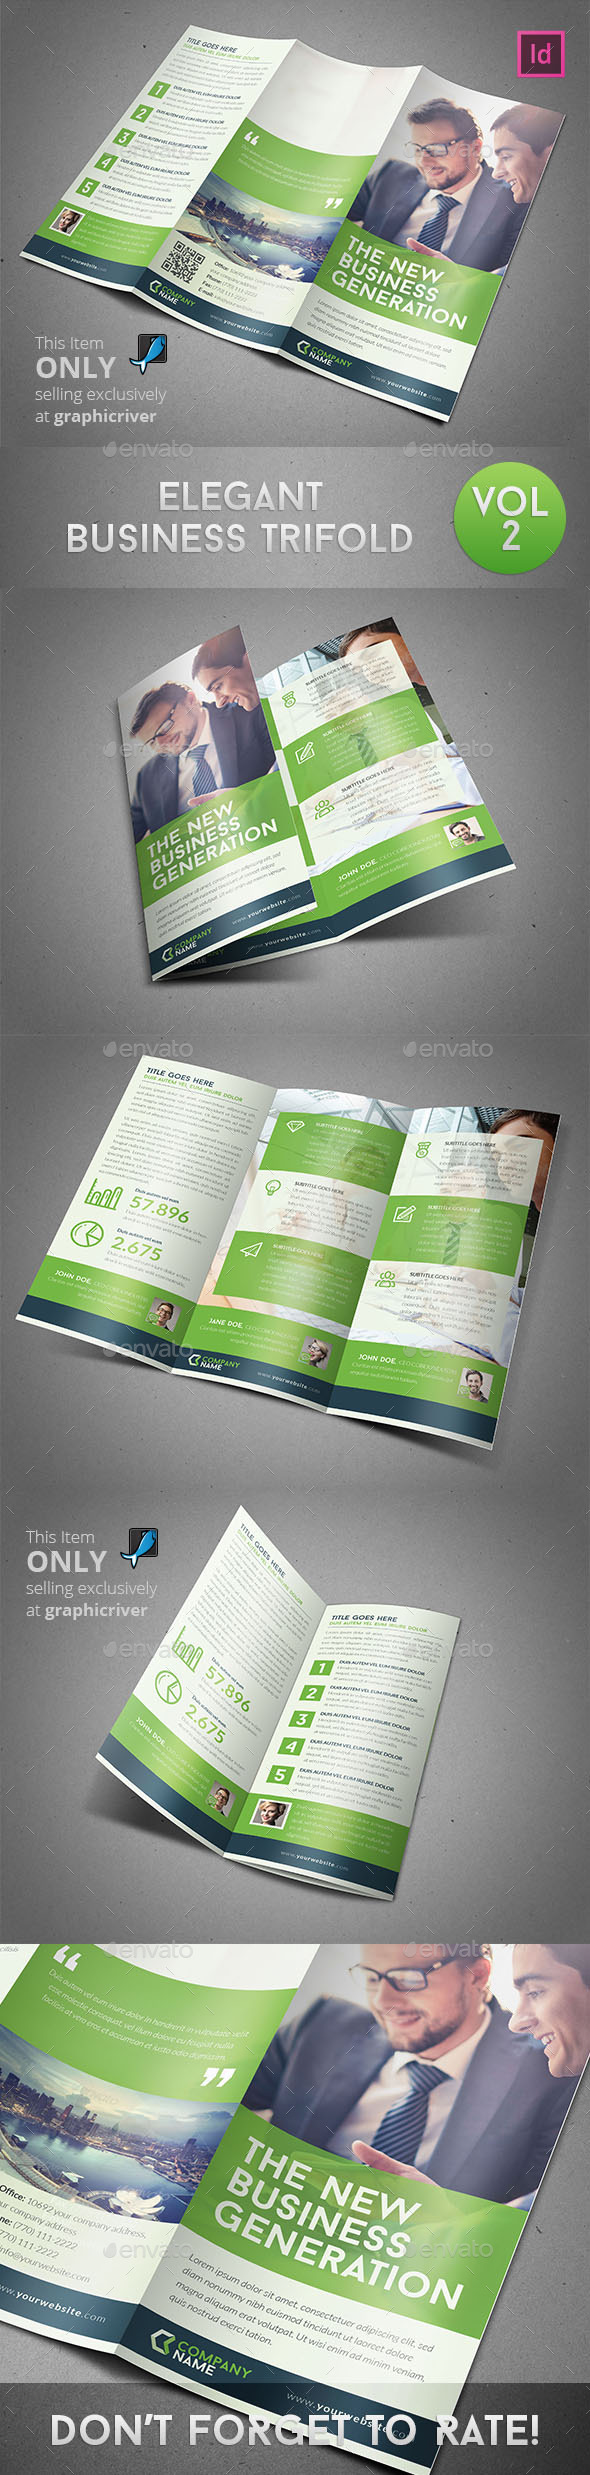 Elegant Business Trifold - Informational Brochures